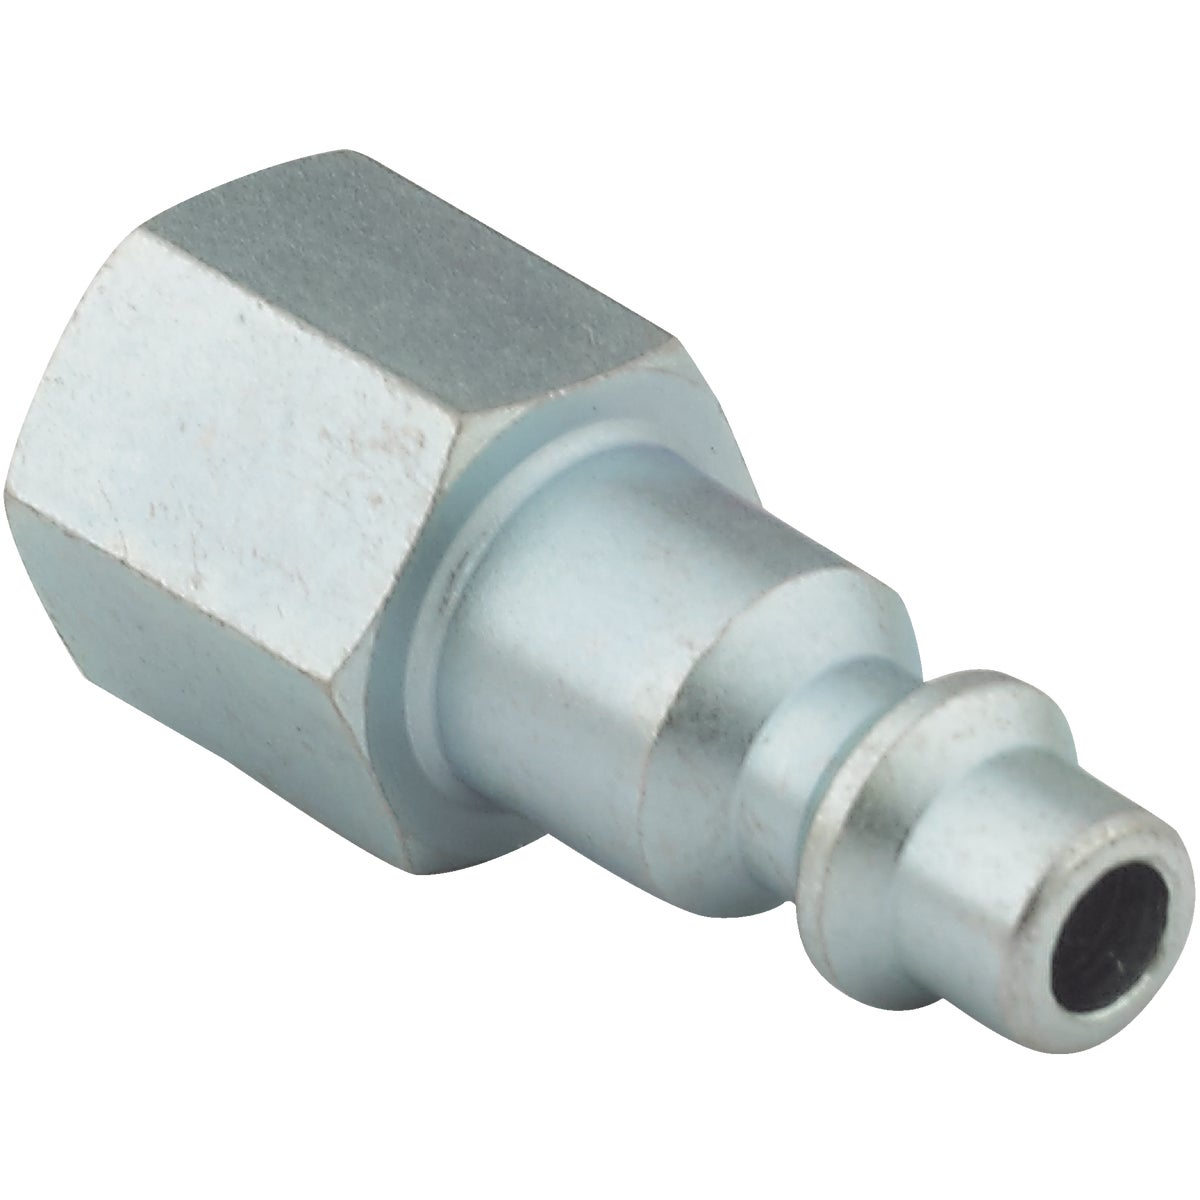 "1/4""I/M BULK FEMALE PLUG - 12-234 by Plews  Lubrimatic"